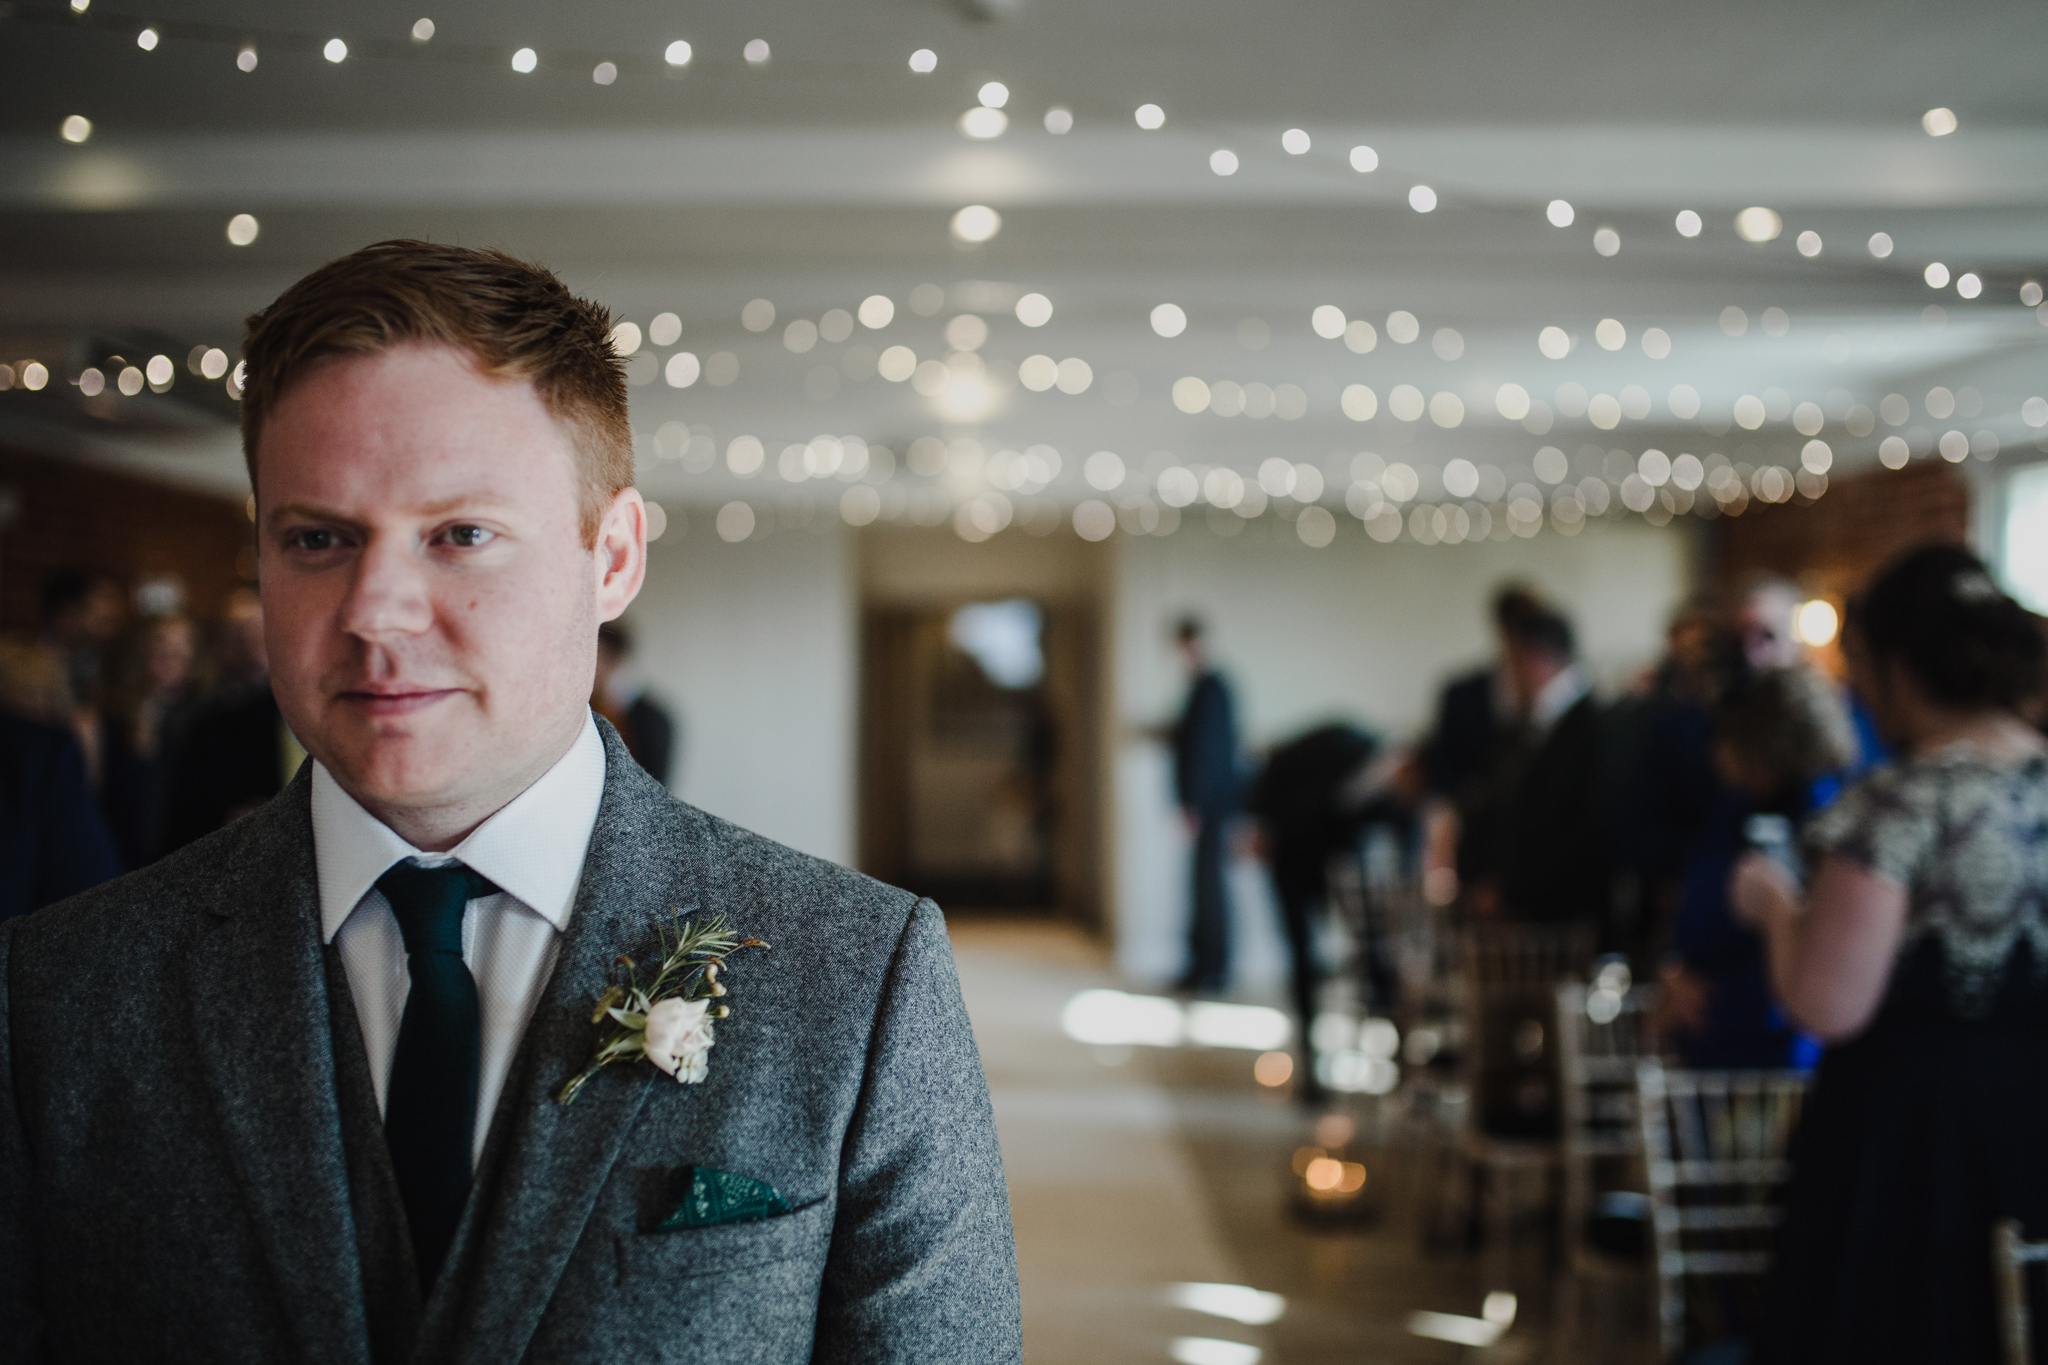 Groom waiting at the aisle at Sopley Mills ceremony room